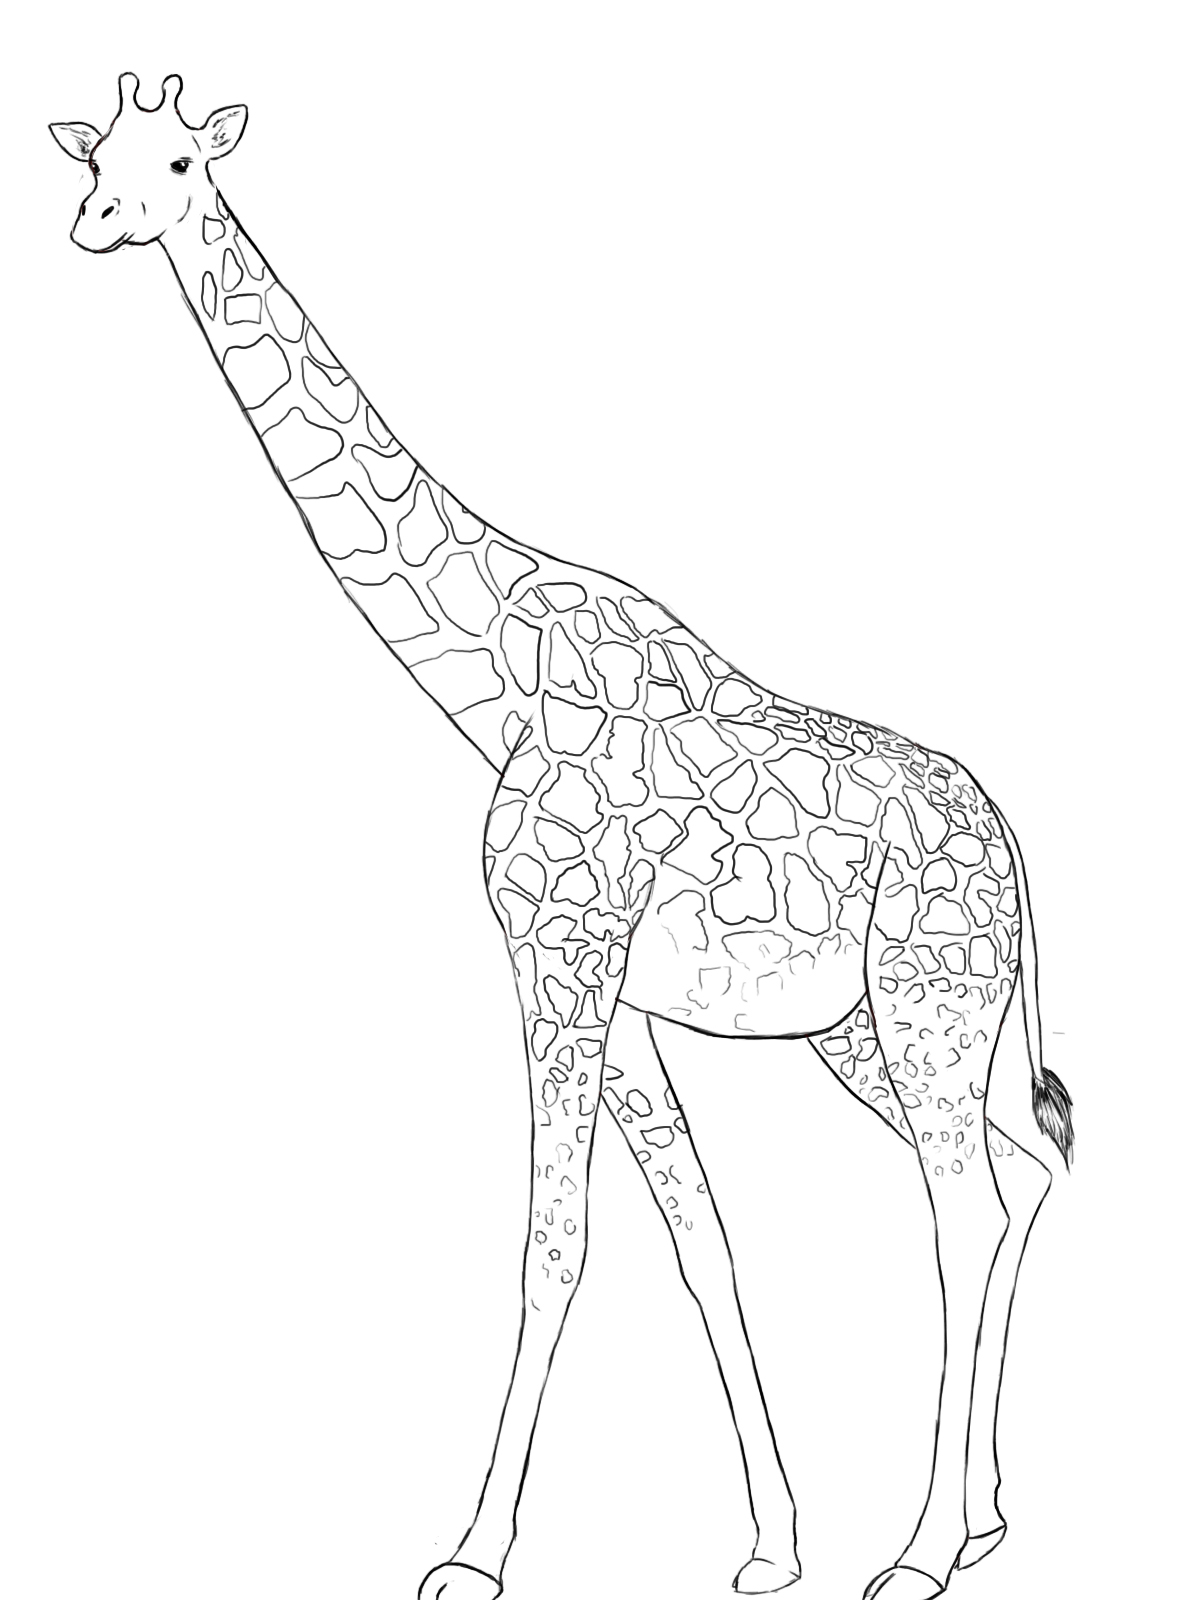 How To Draw A Giraffe - Draw Central